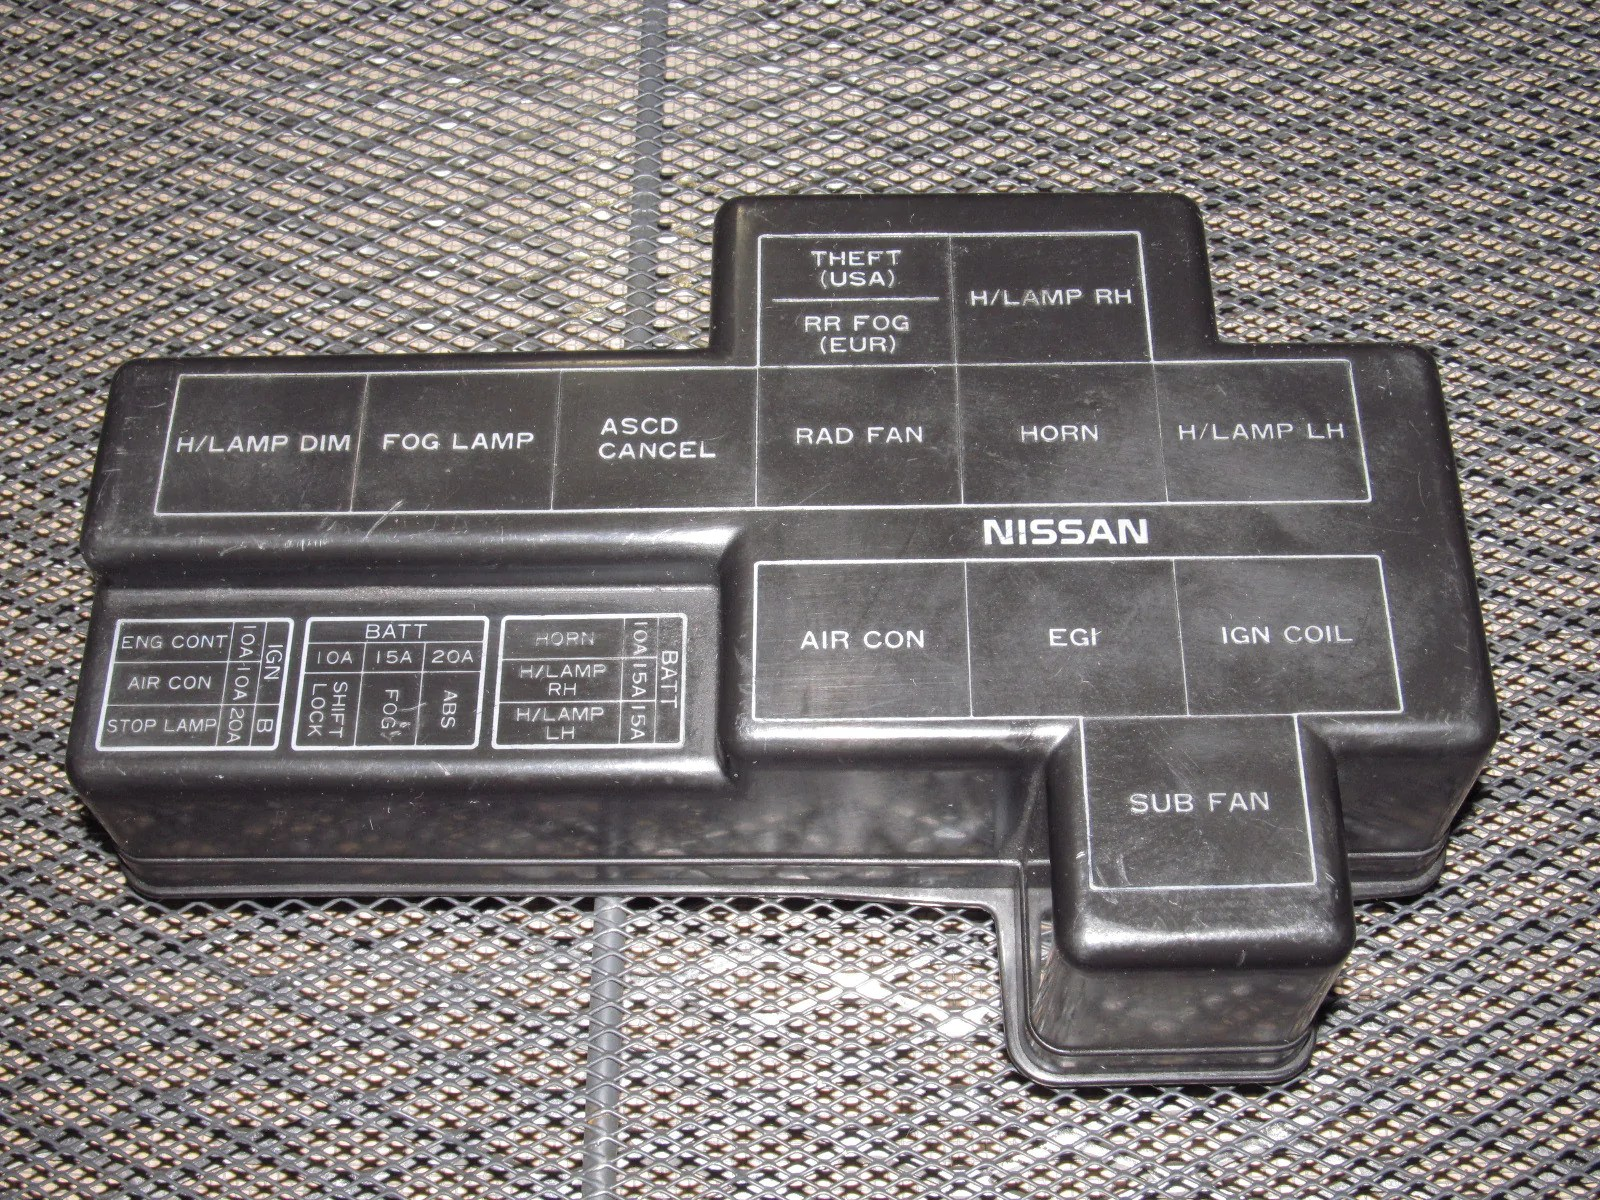 1990 Nissan 300zx Fuse Box Diagram On 90 Miata Interior Fuse Box